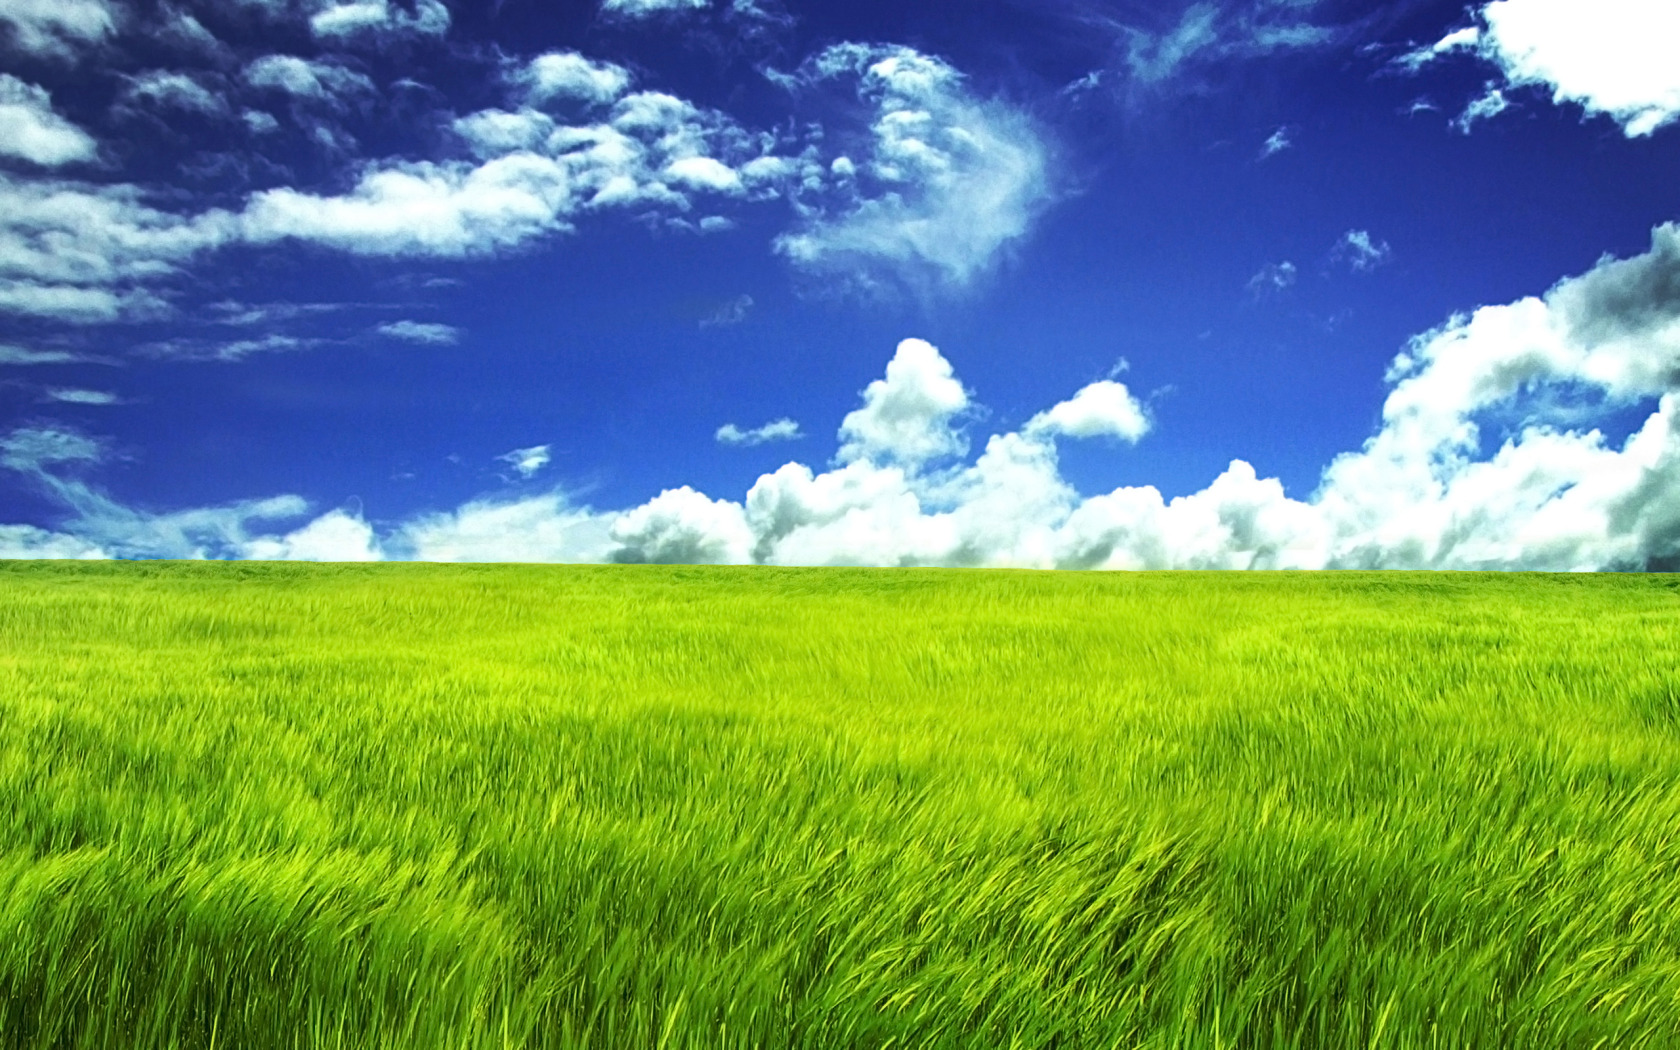 Field Wallpapers 31078 2560x1600 px